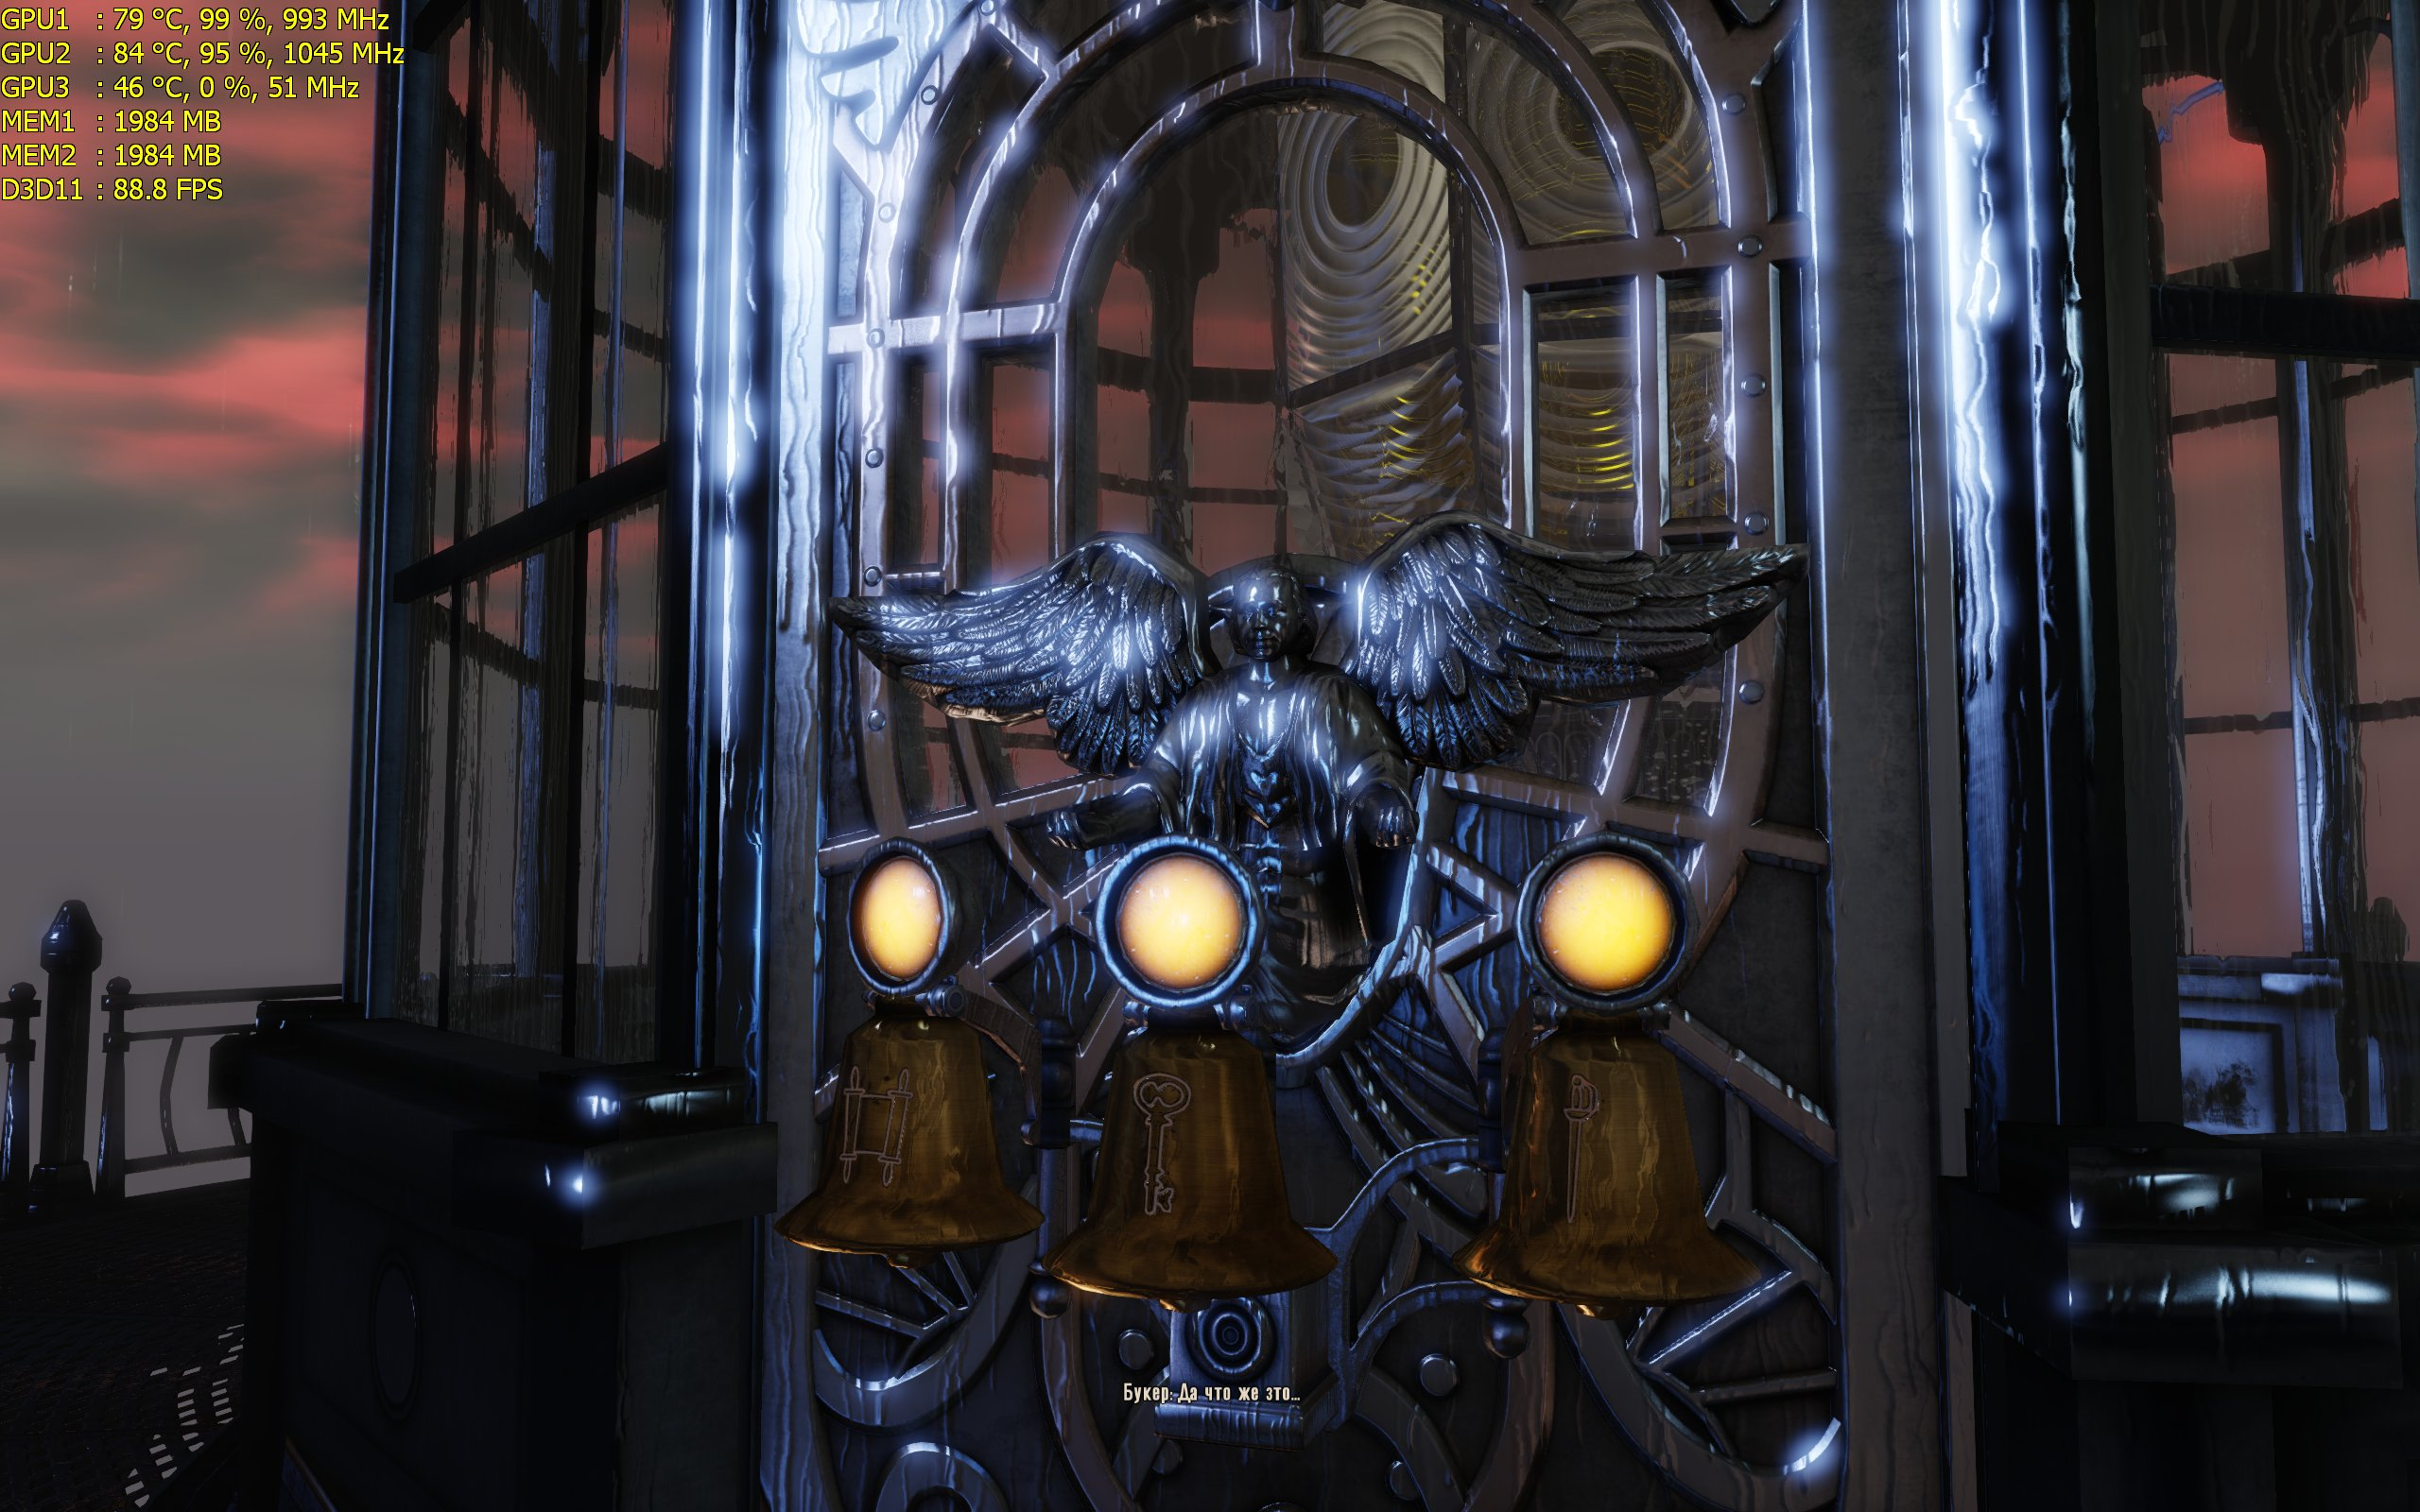 BioShockInfinite 2013_03_25_22_44_59_174